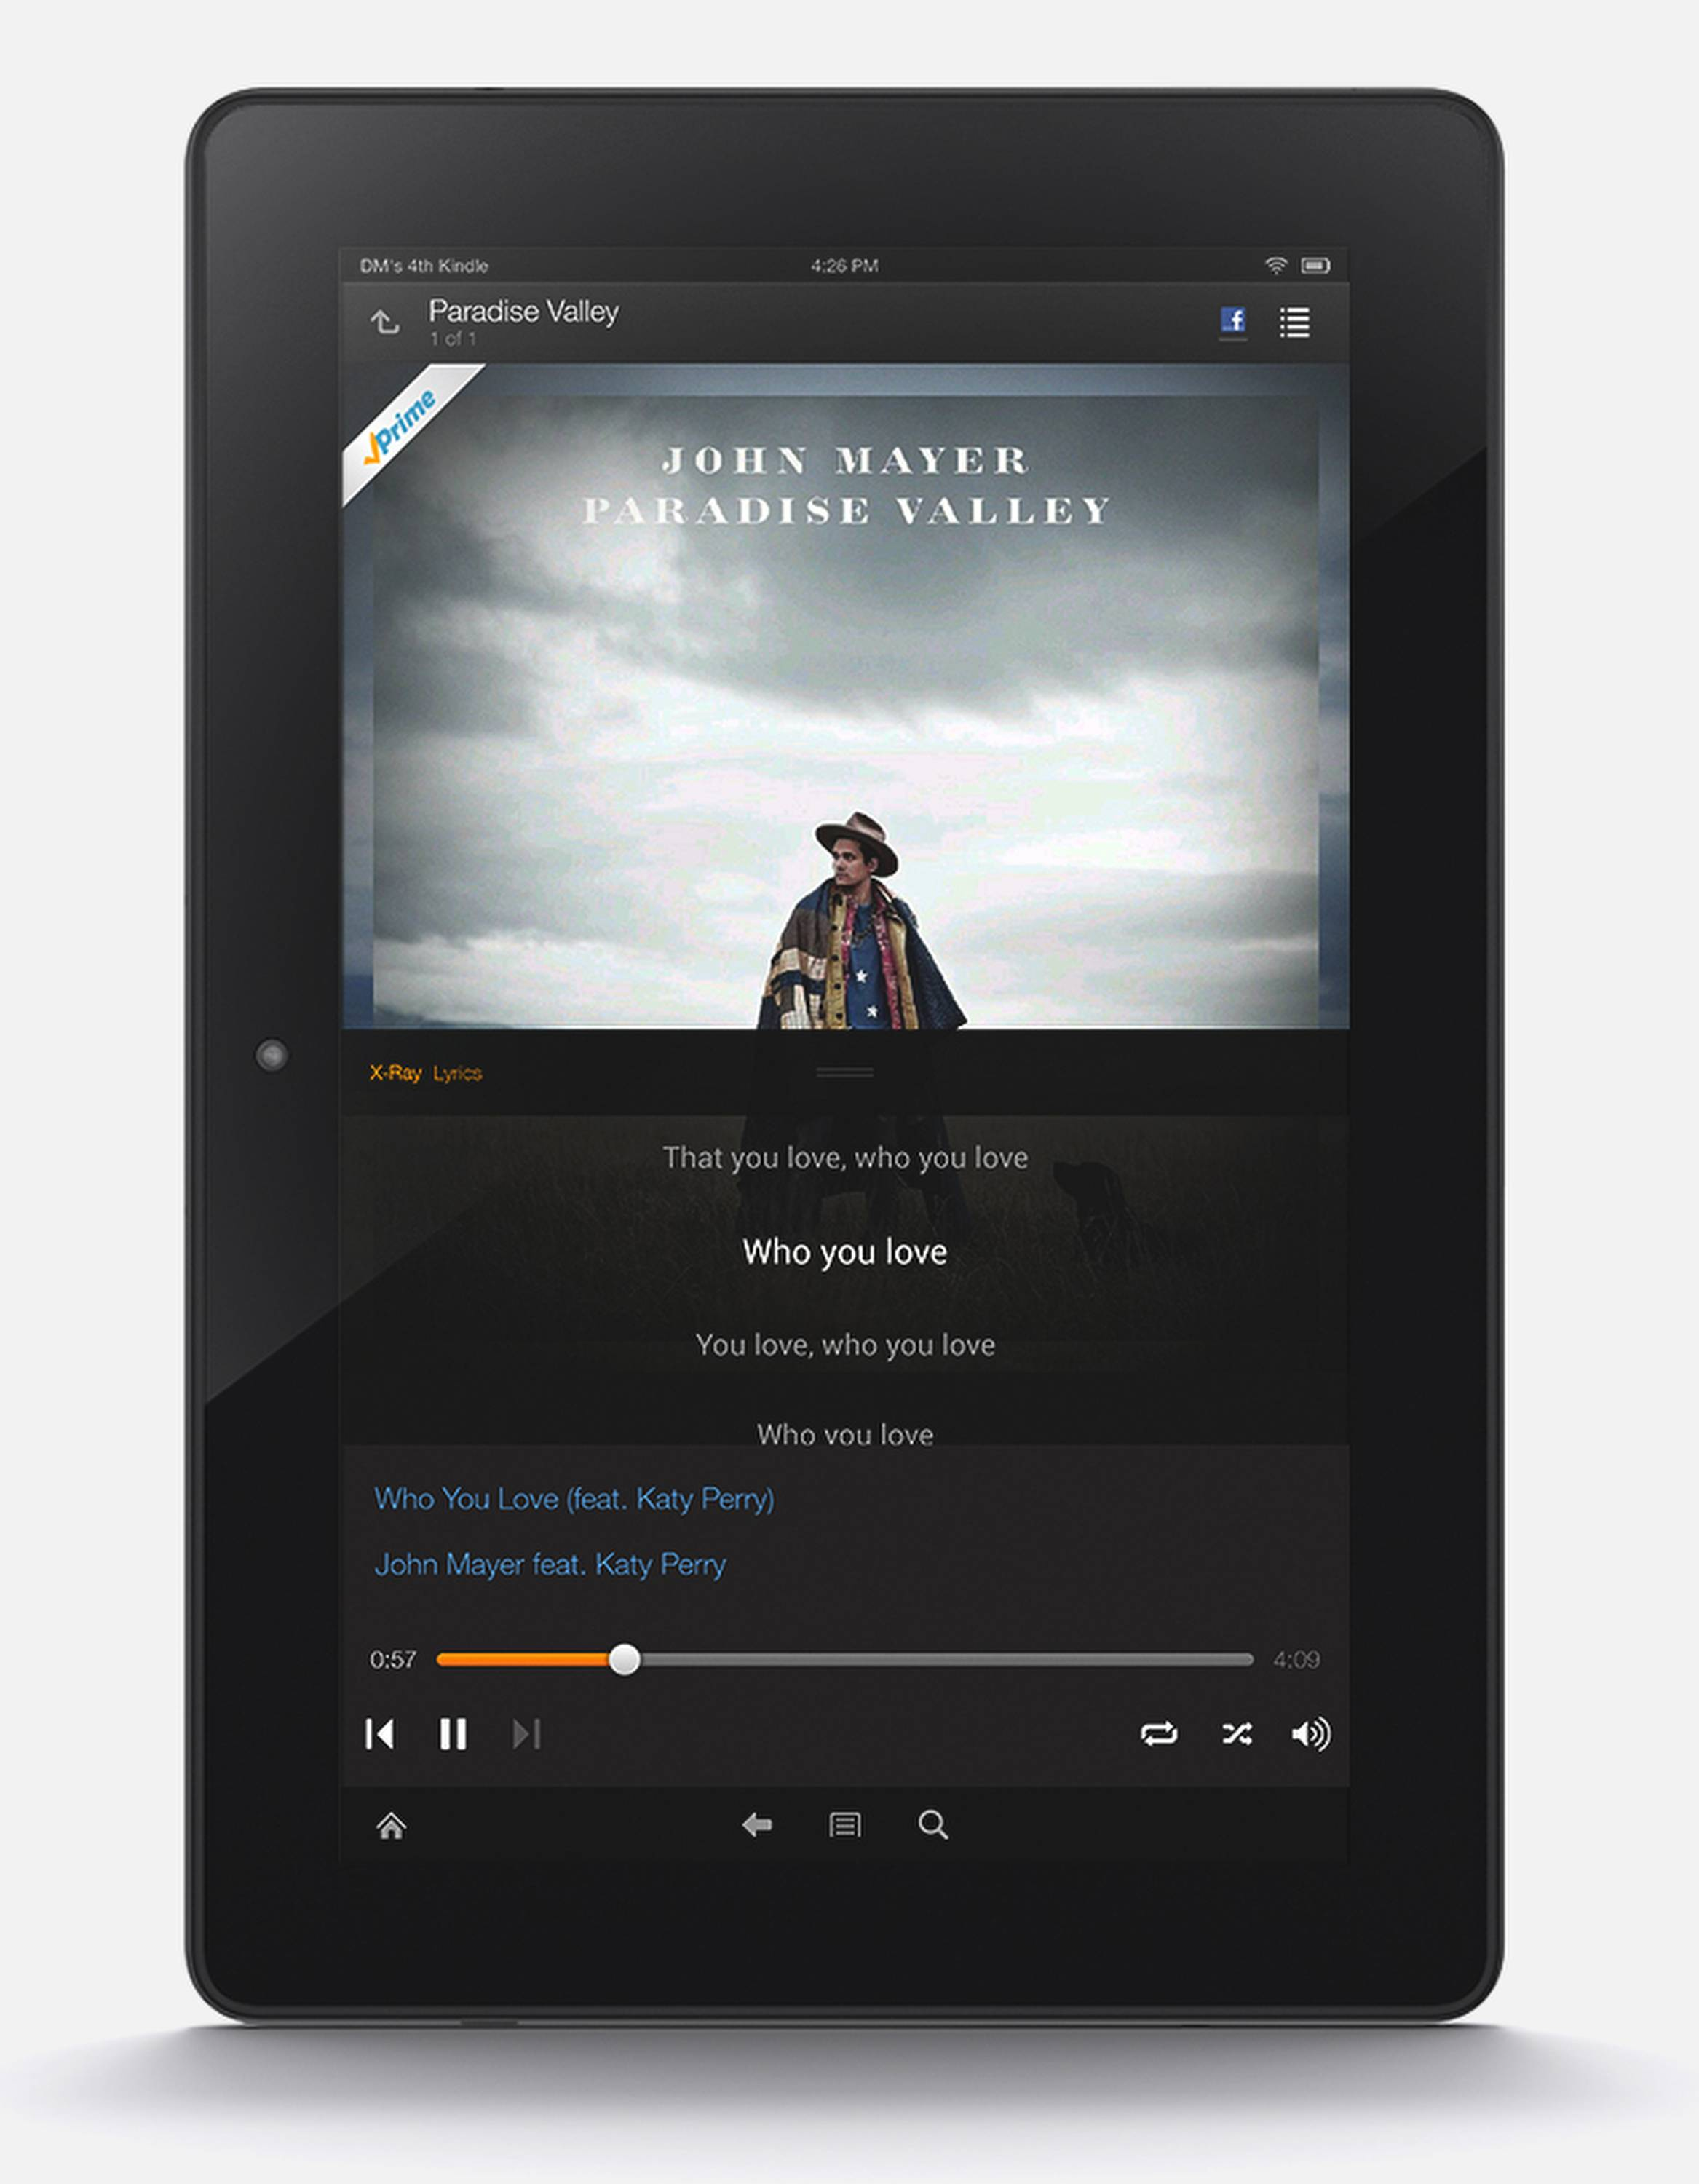 Amazon is launching a music streaming service for its Prime members, adding yet another freebie to its popular free-shipping plan ahead of the expected unveiling of its first smartphone next week.